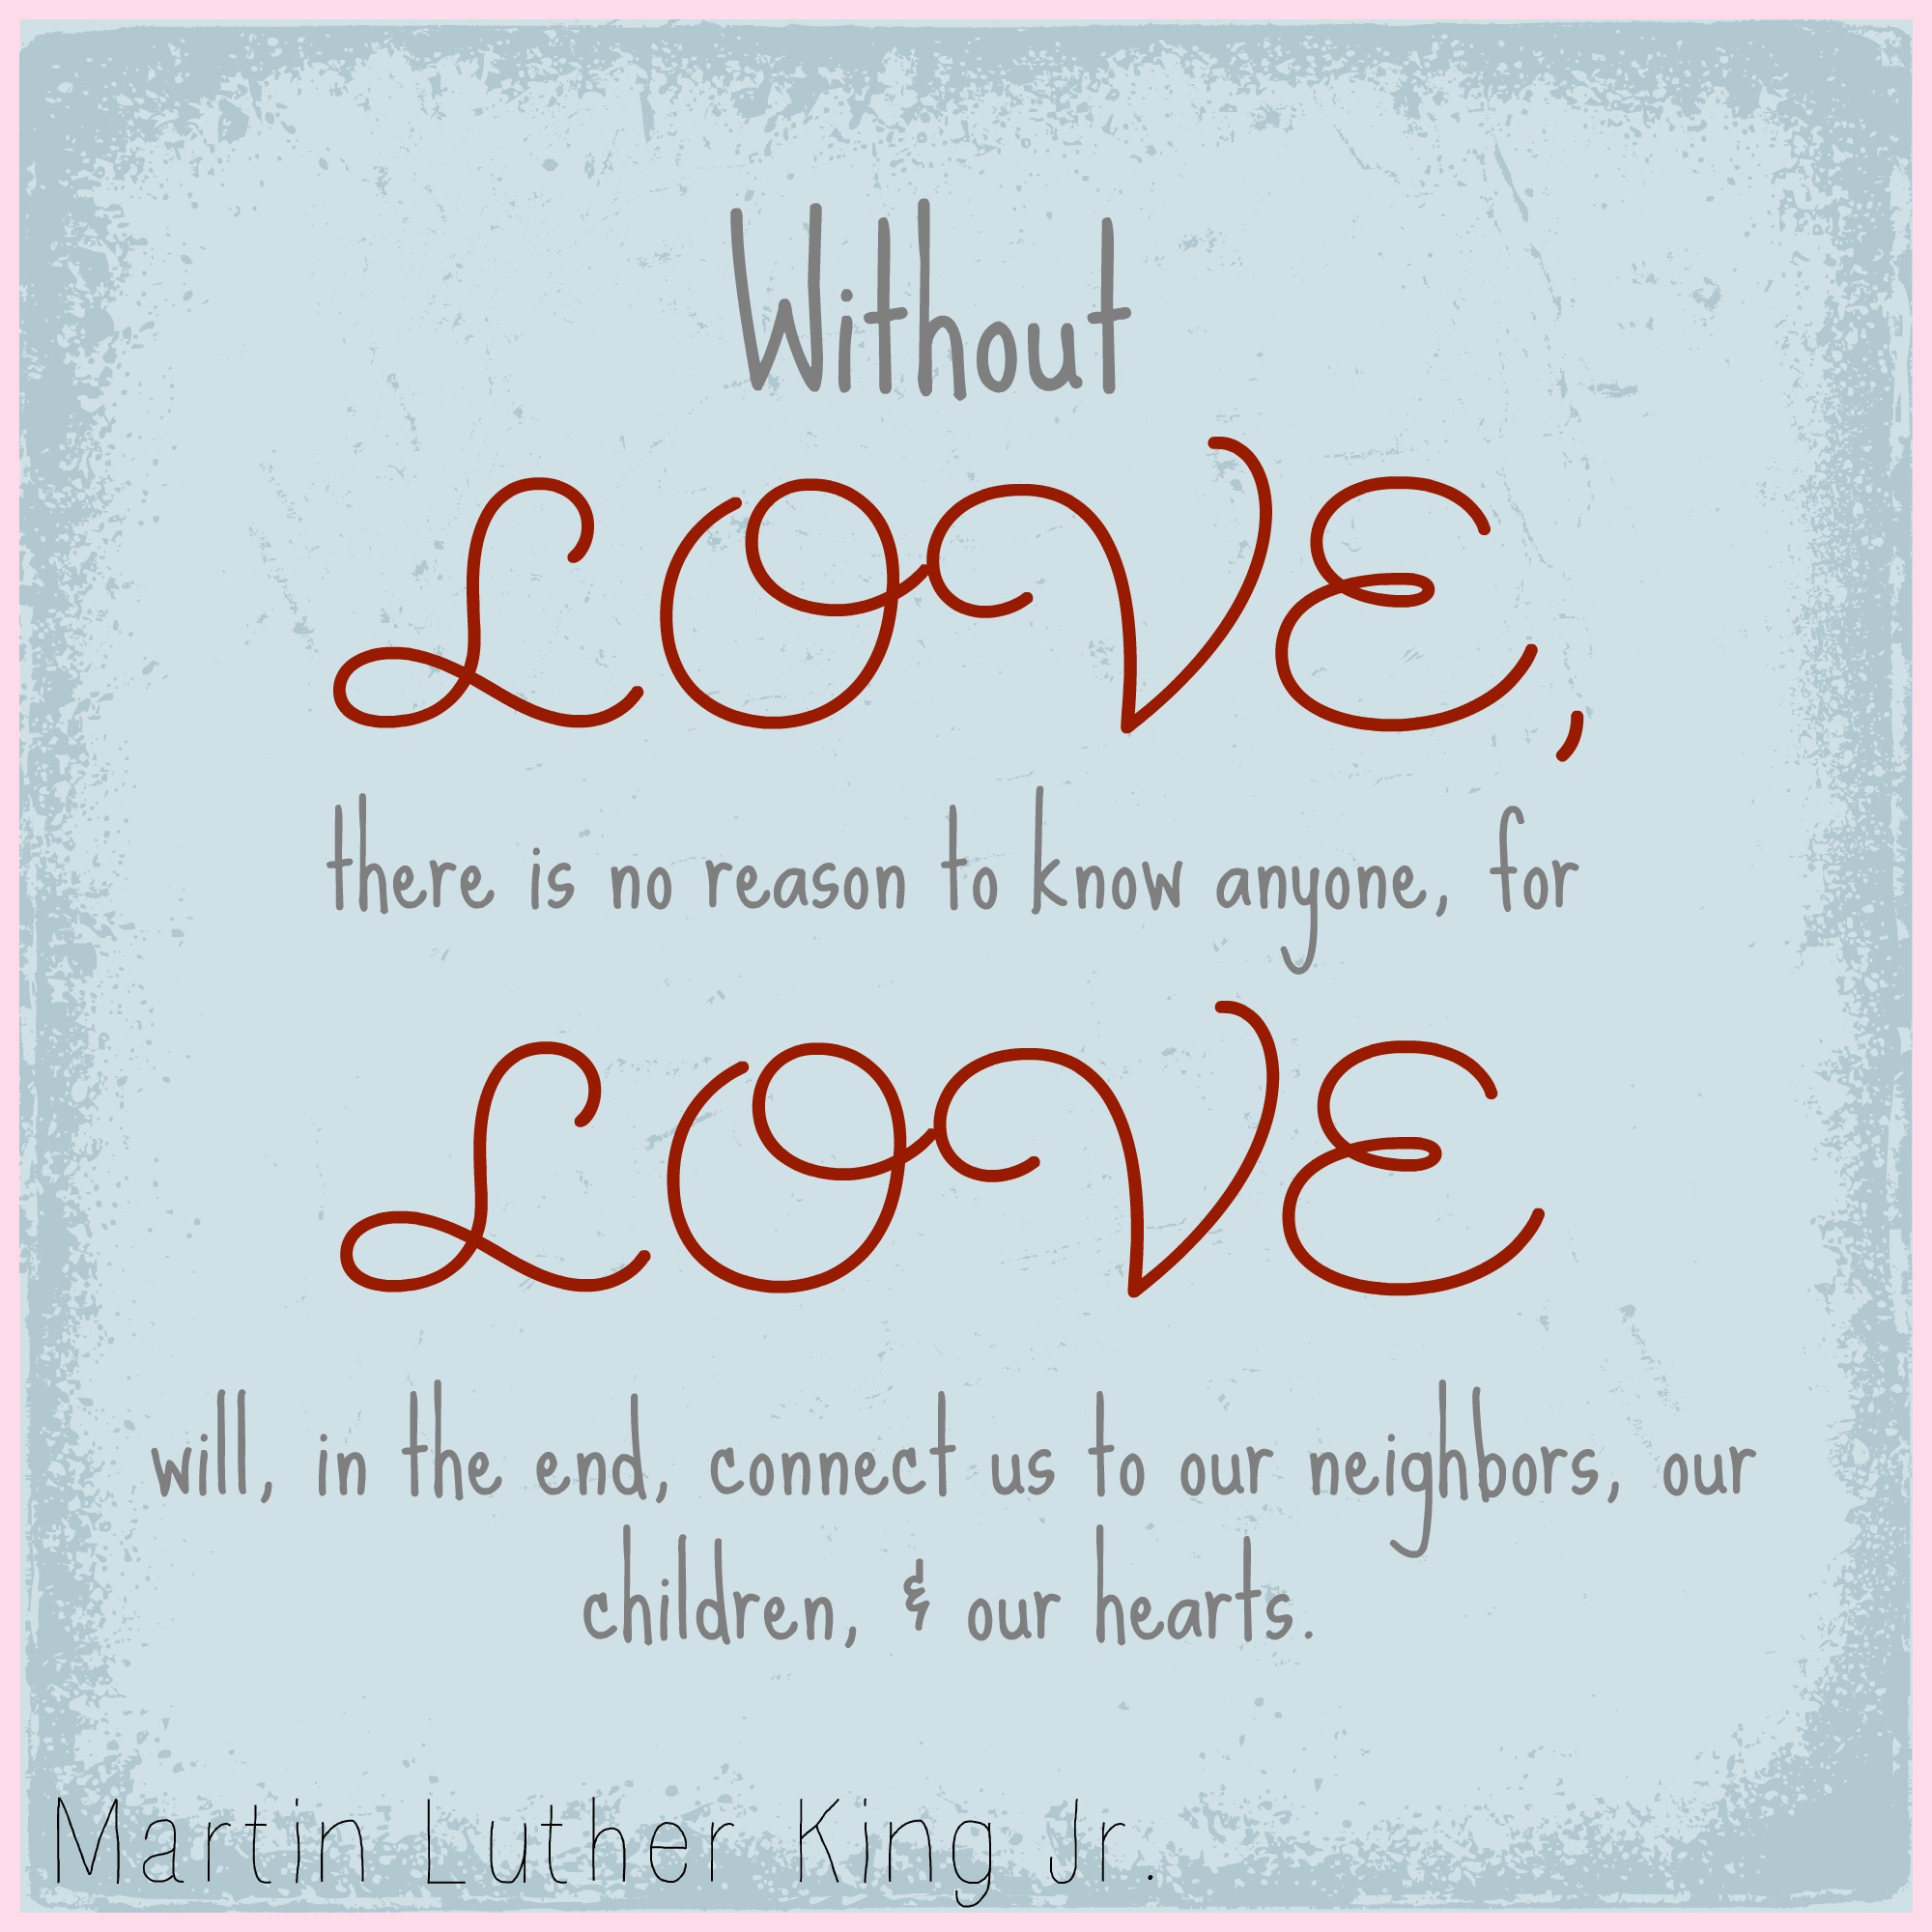 Quotes (that I LOVE) from Martin Luther King Jr. The Little Red Owl